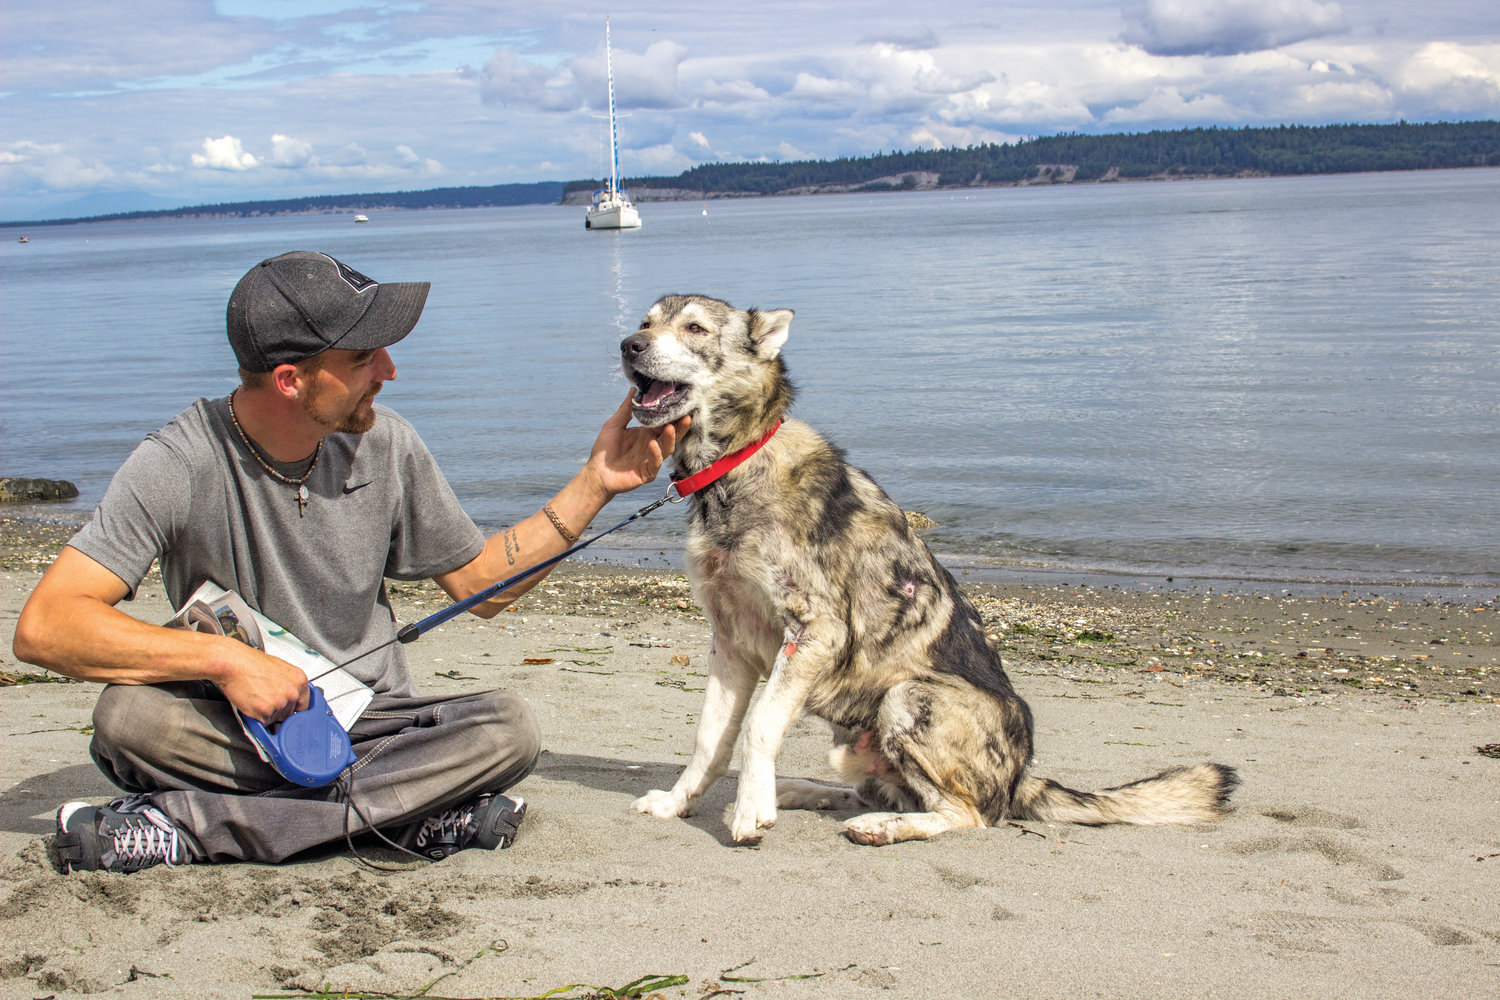 Michael Allmain and his dog Moses have been together four years. Allmain wanted to come forward after The Leader's June 10 article about Moses to tell his side of the story.